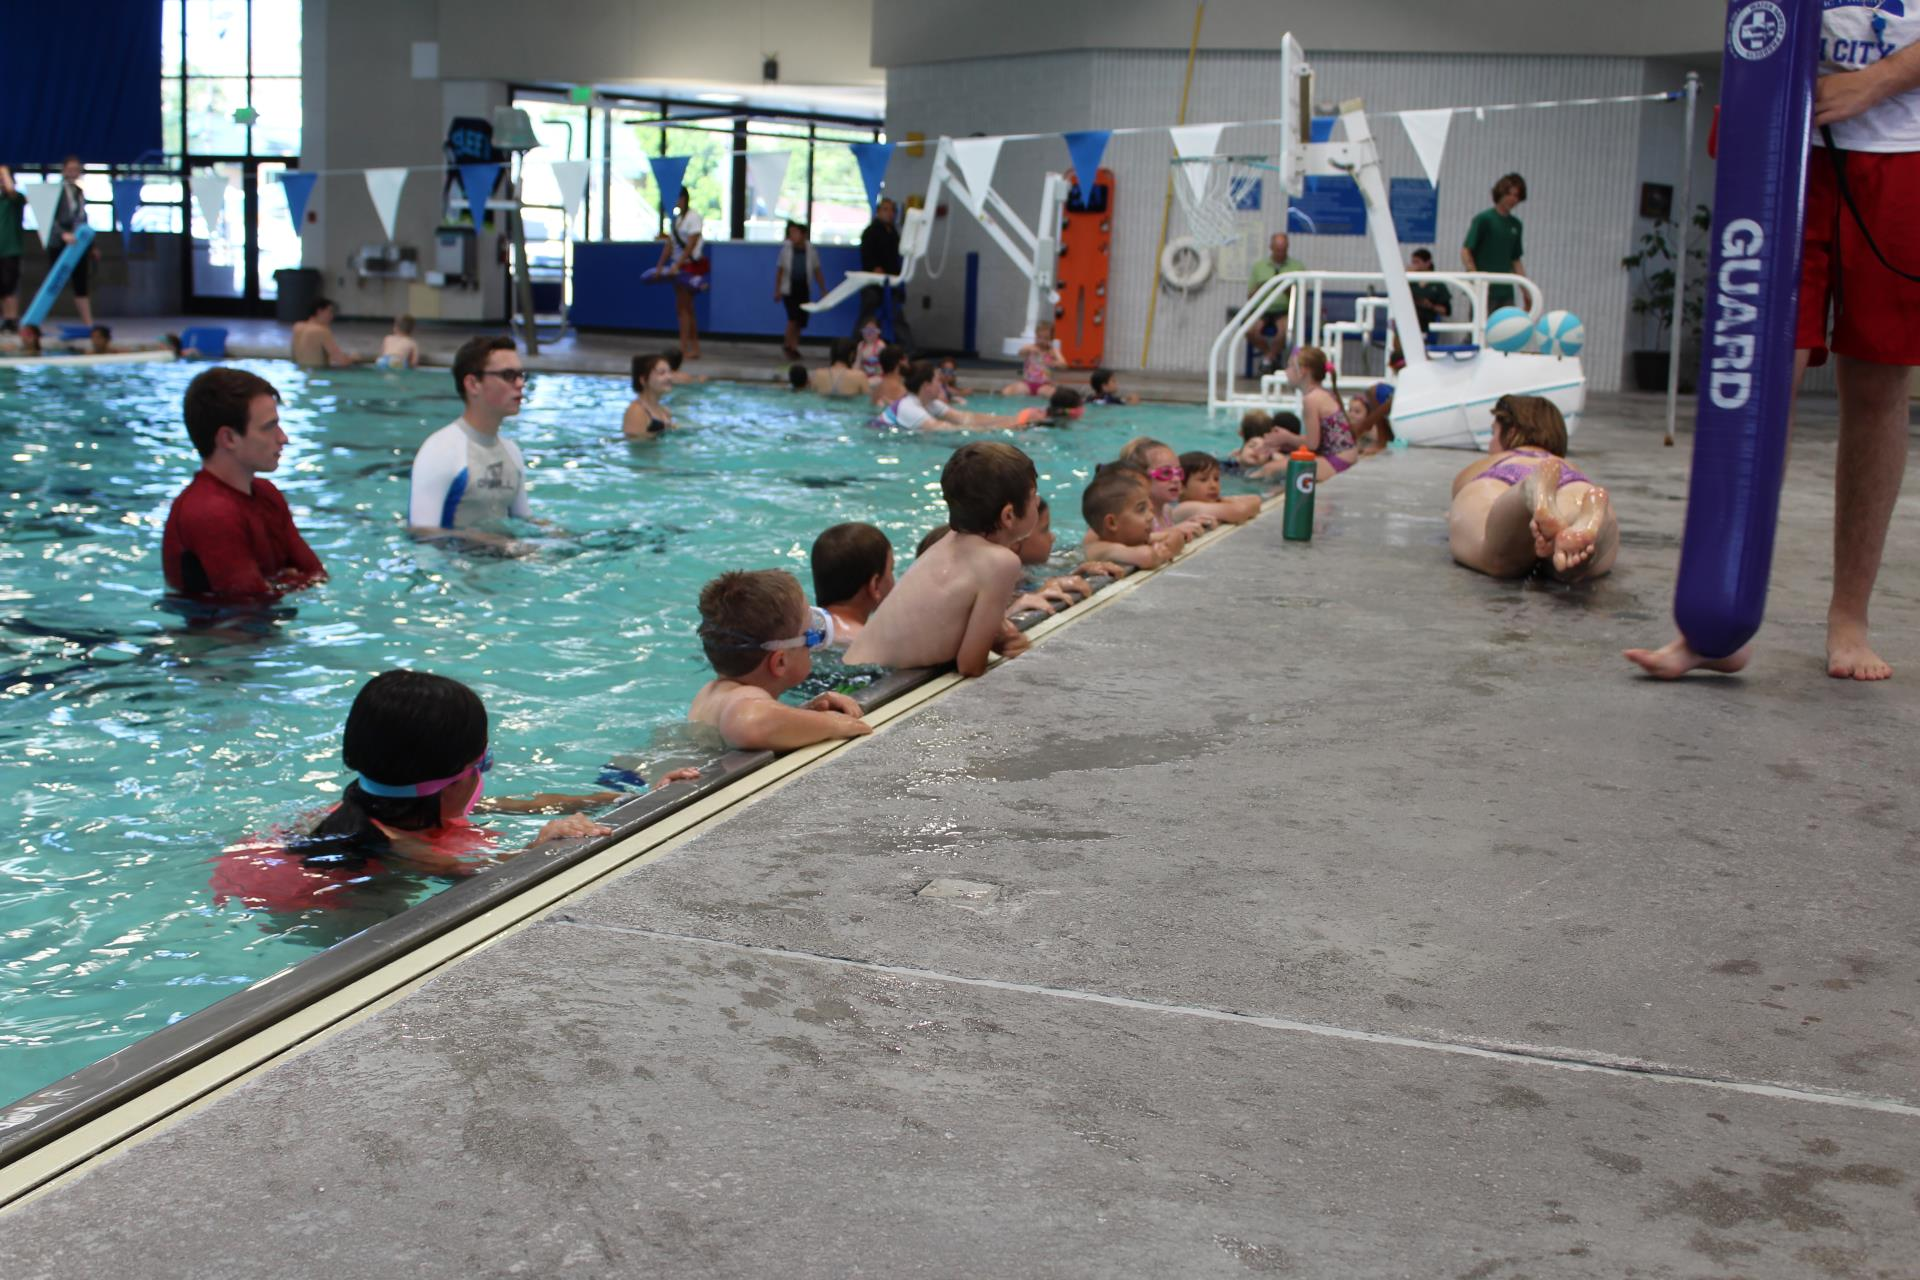 Capital Kids Swim Lesson photo 1